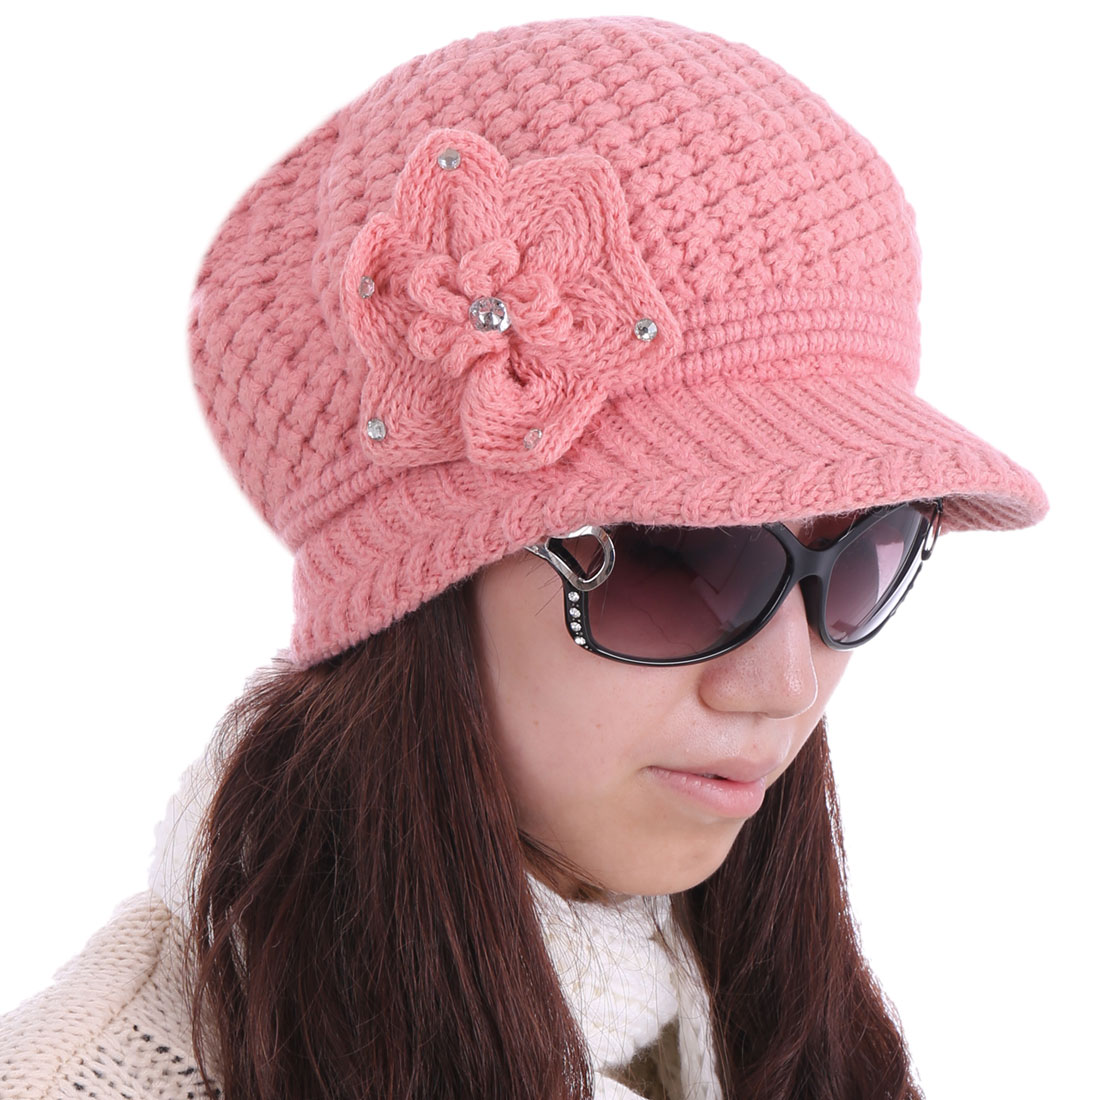 Women Ribbing Winter Wearing Soft Stylish Hat Pink